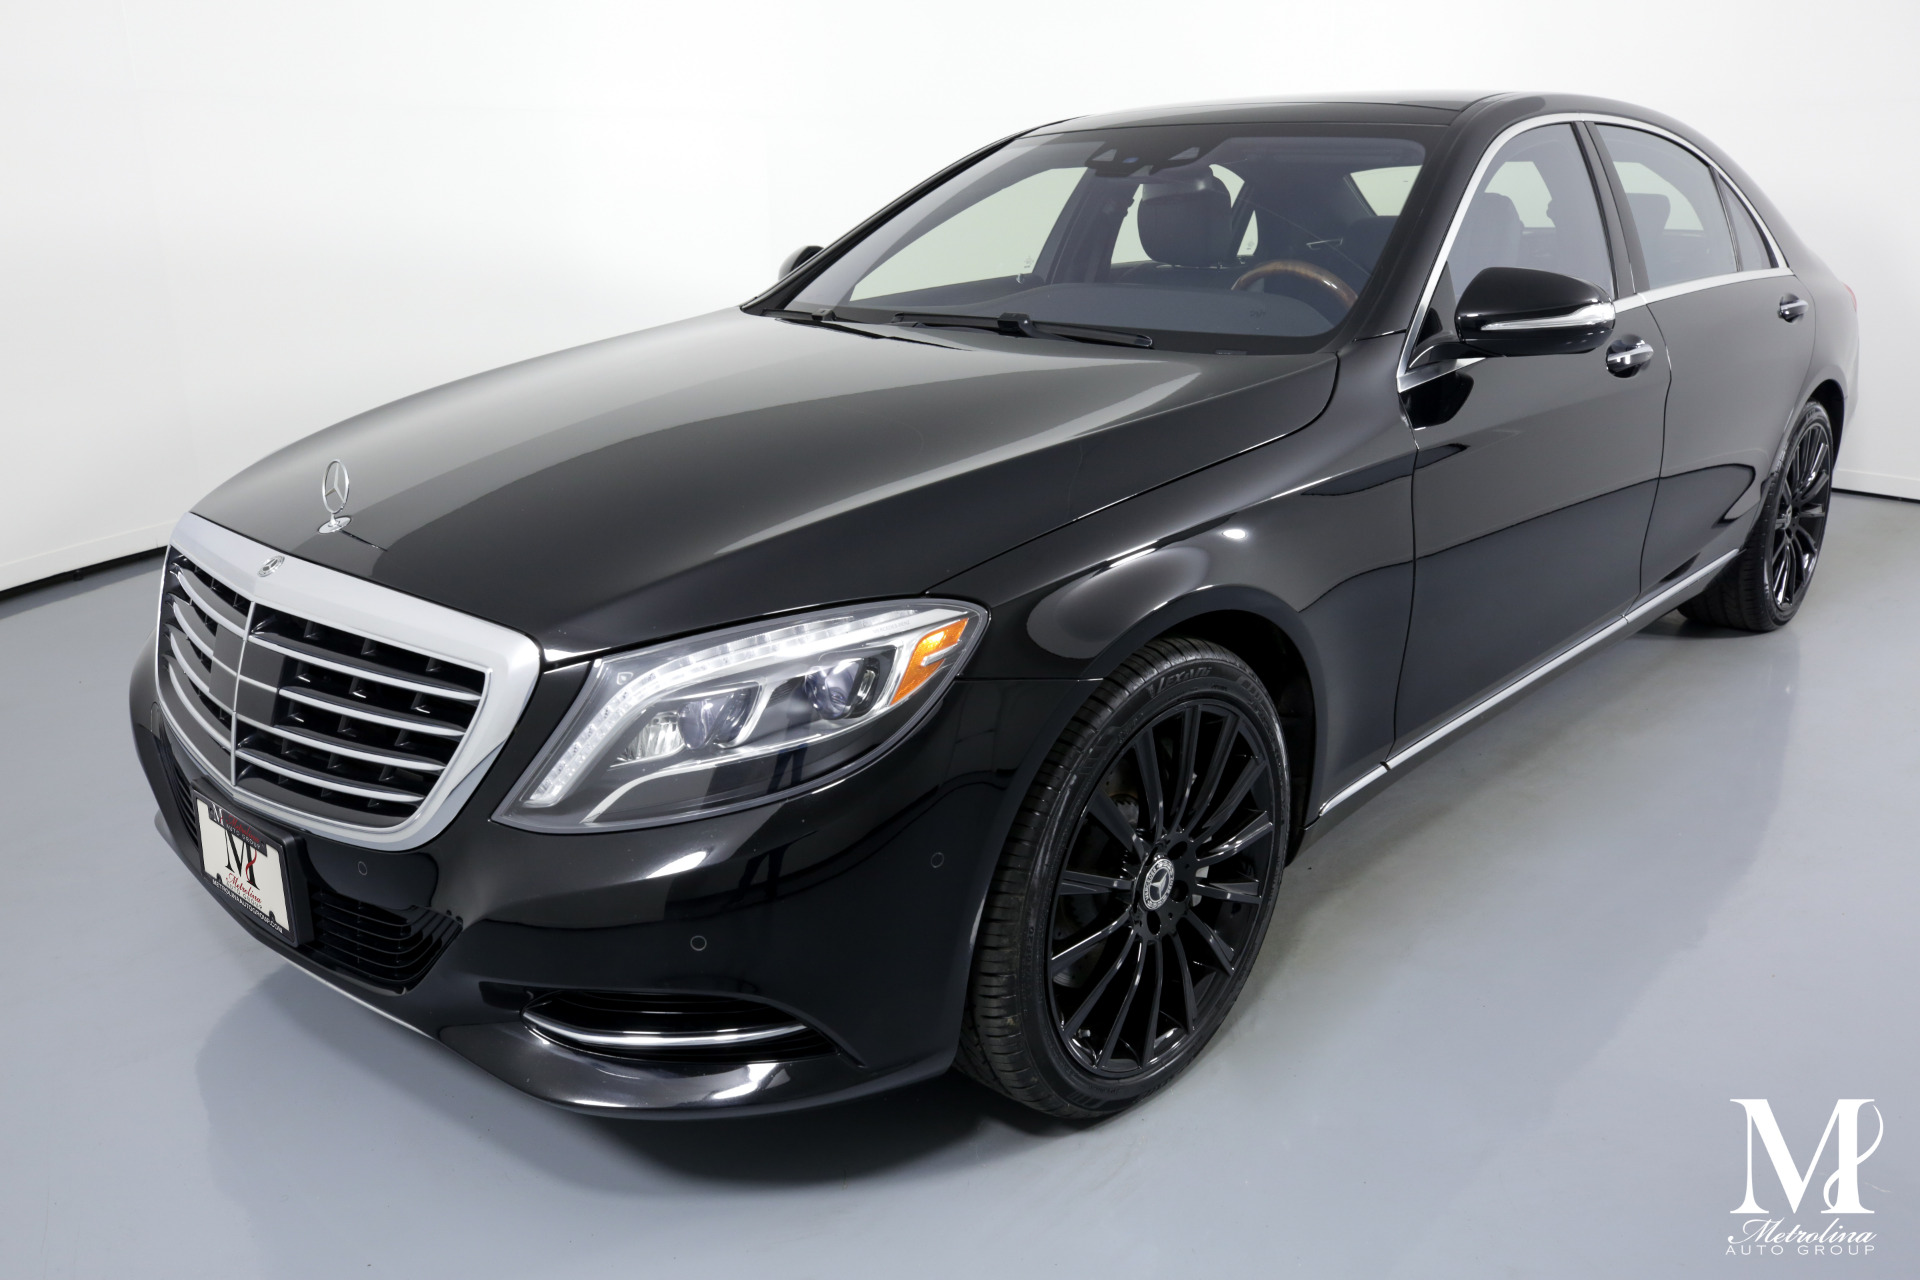 Used 2017 Mercedes-Benz S-Class S 550 4MATIC for sale $54,996 at Metrolina Auto Group in Charlotte NC 28217 - 4